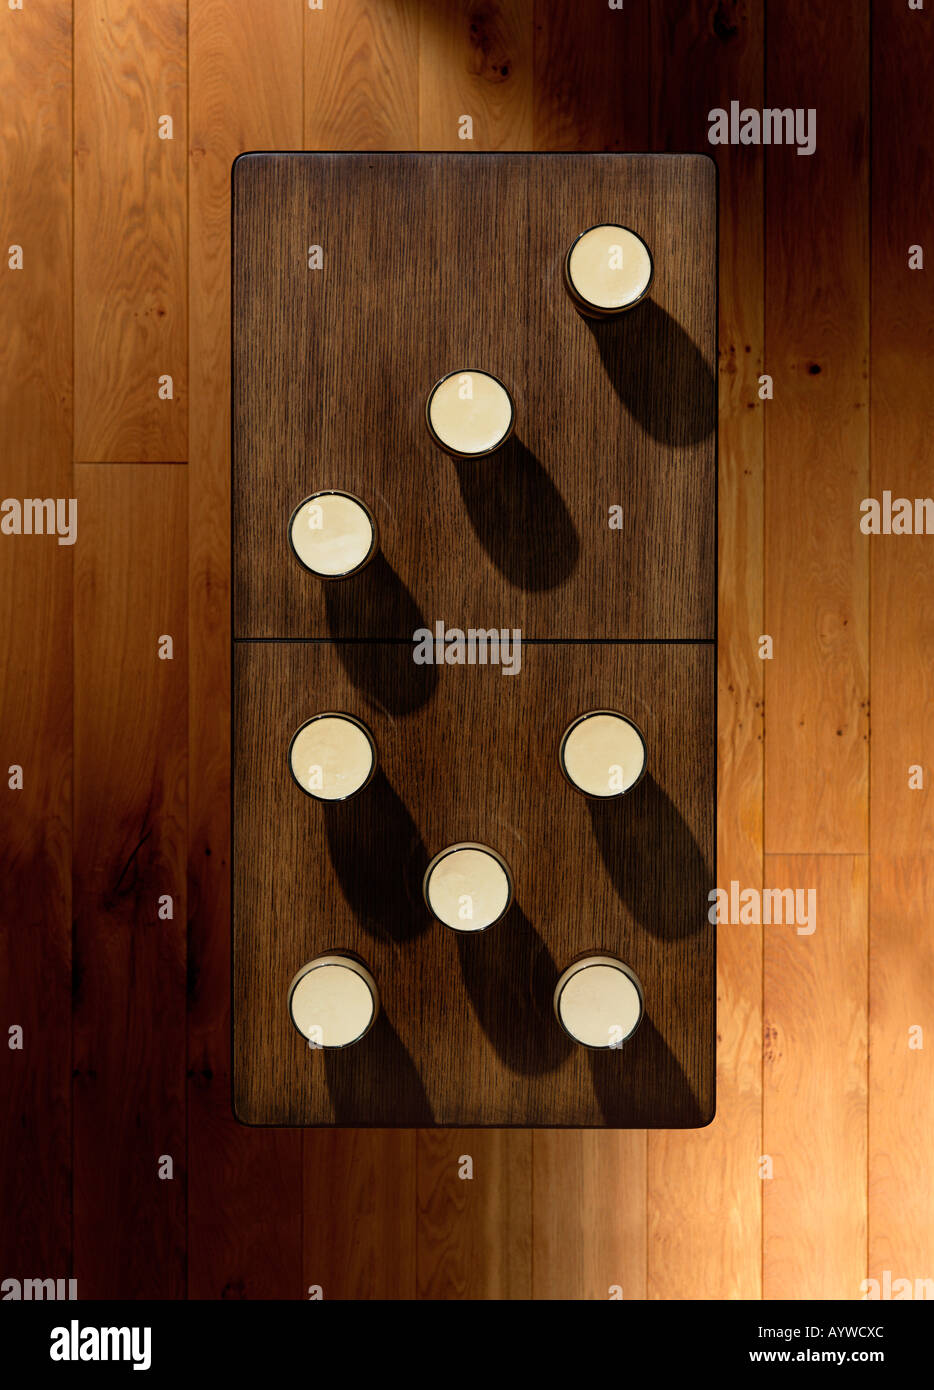 An overhead shot of a table with some pints placed on it to also look like a domino Stock Photo